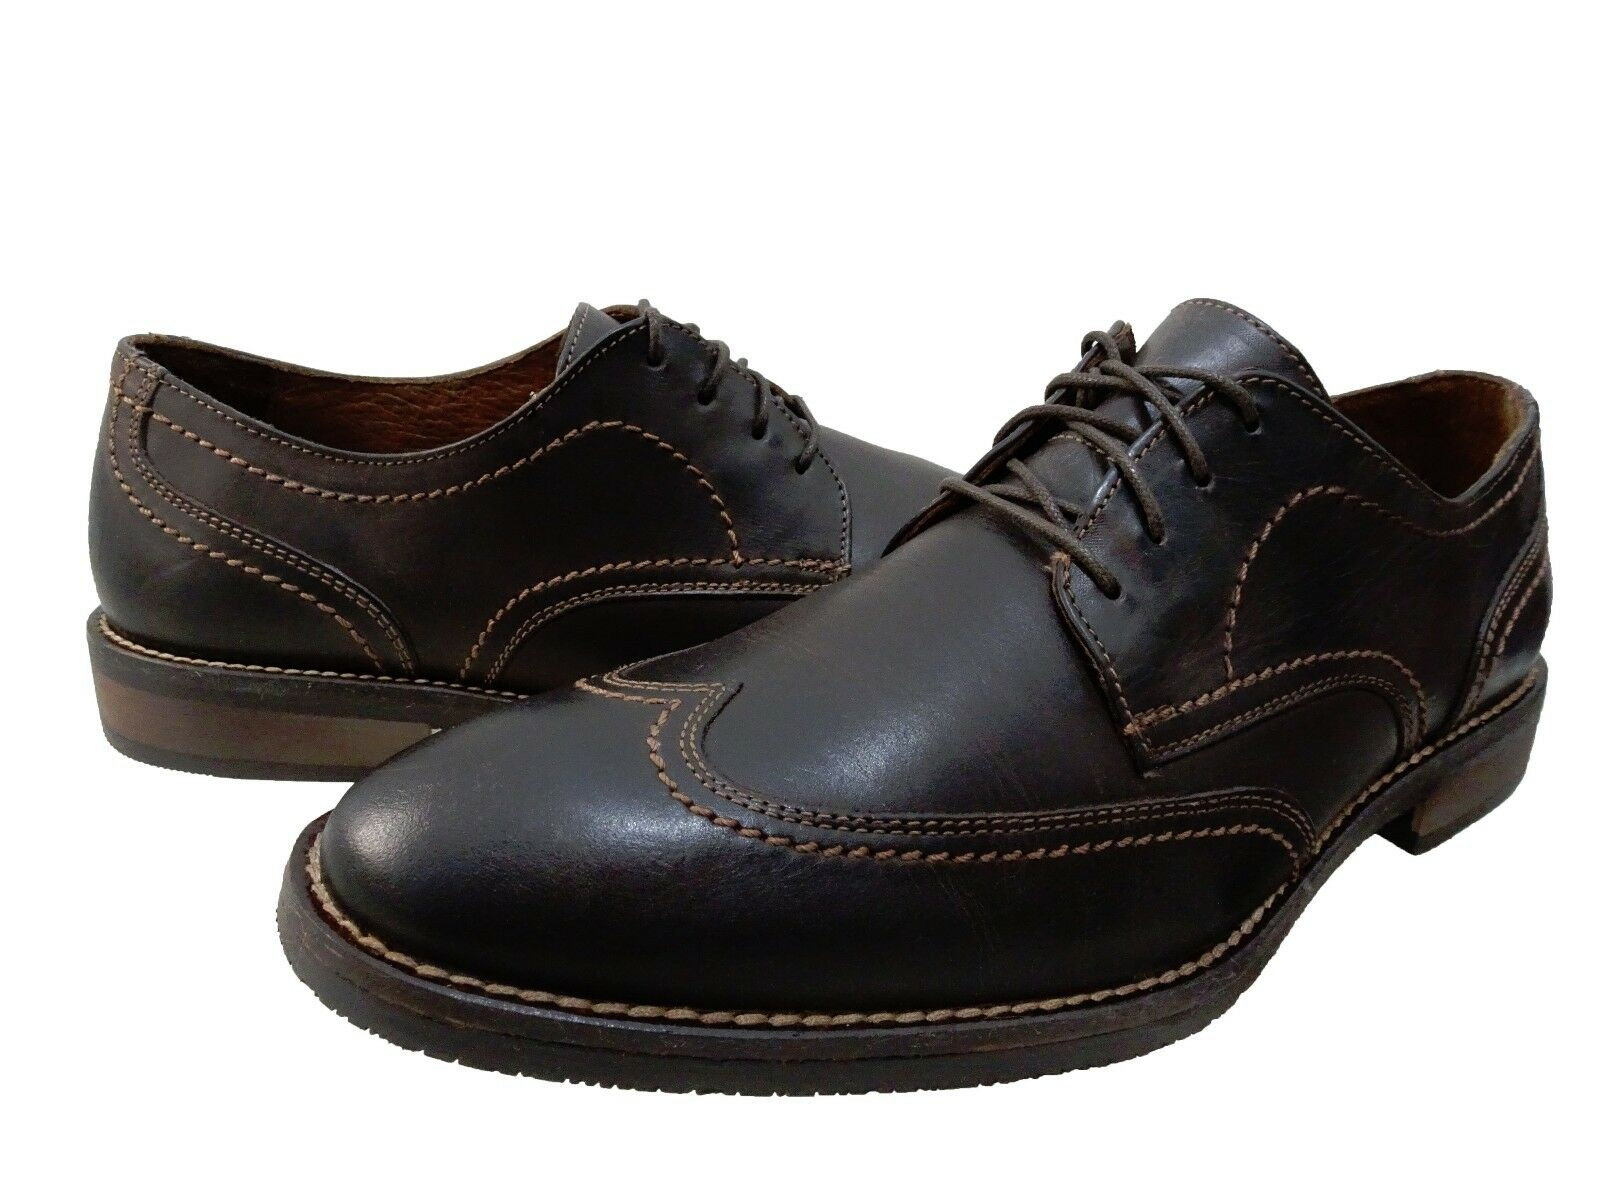 Scarpe casual da uomo  Johnston & Murphy uomos Jarrell Wingtip Lace Up Derby Business Casual Dress Shoes